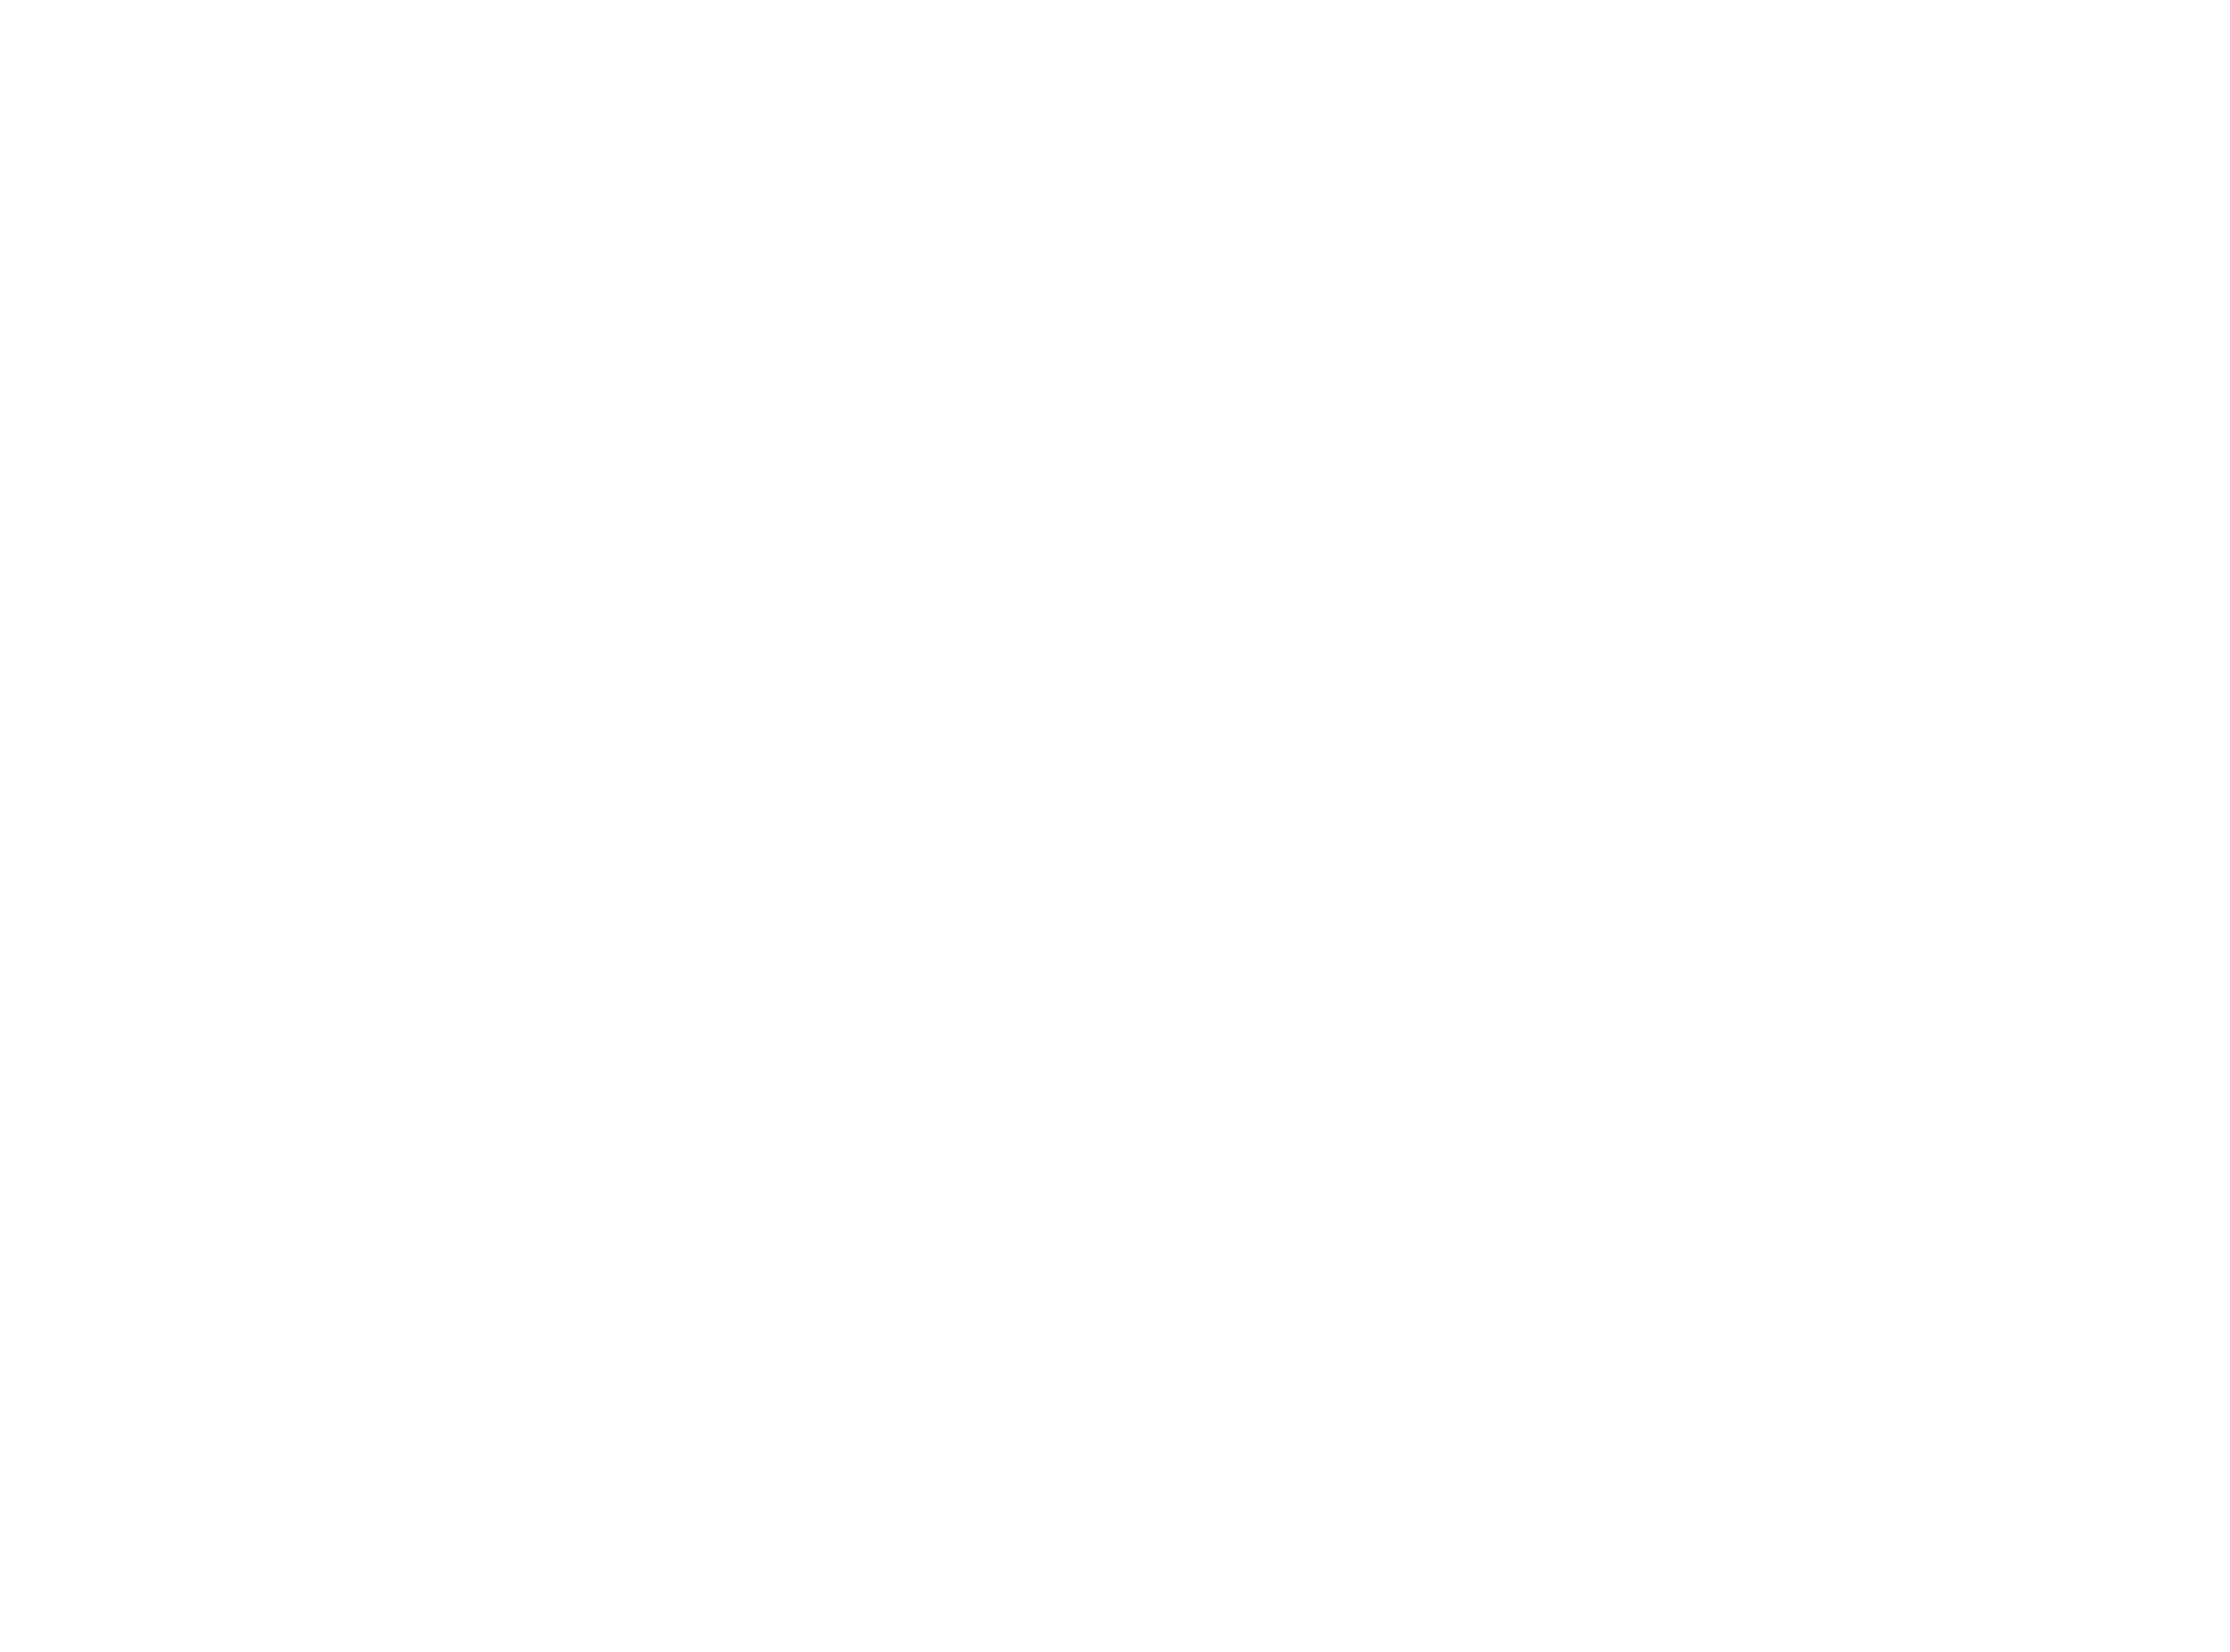 Do-Nation